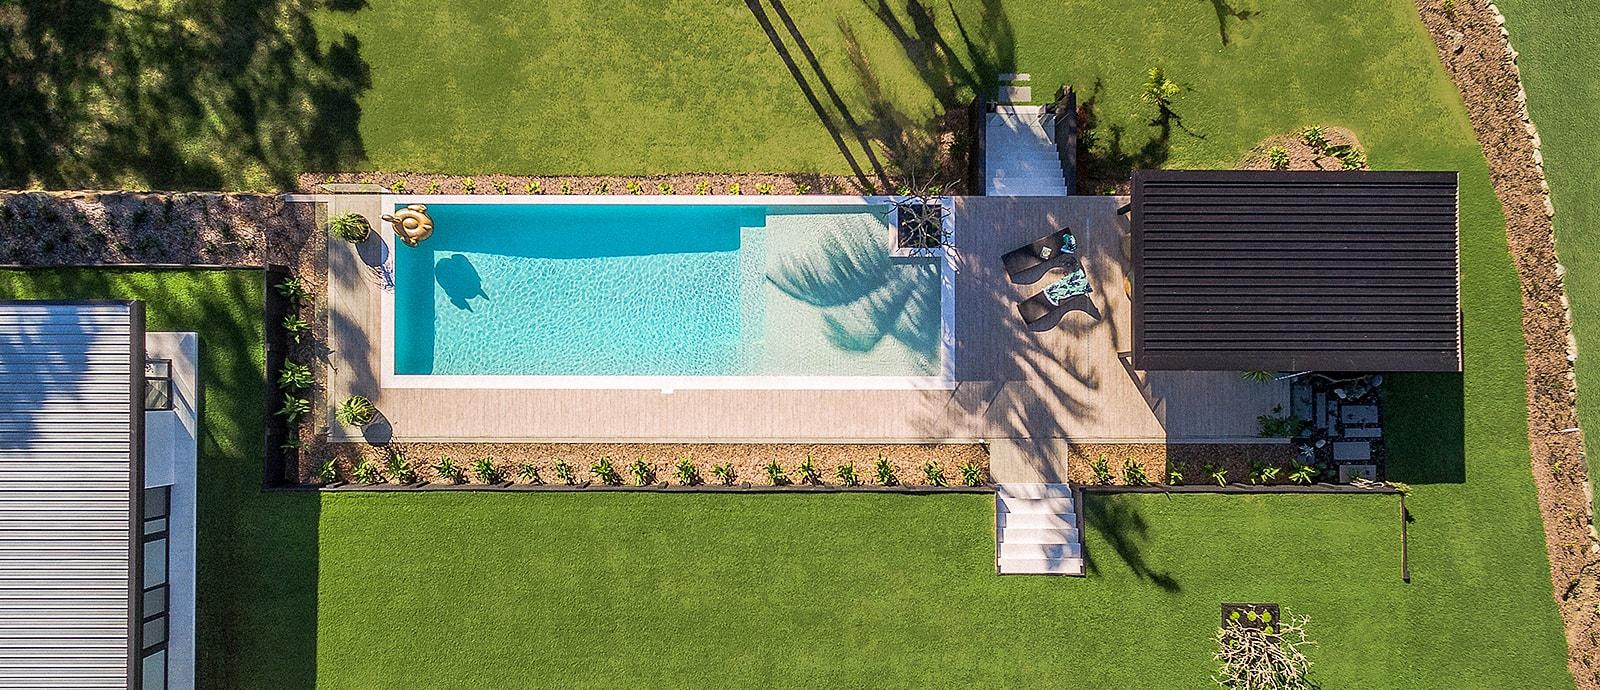 Sarah_Waller_Design_Hero_7_Doonan_Glasshouse_Pool_Drone_image_1600_1-min